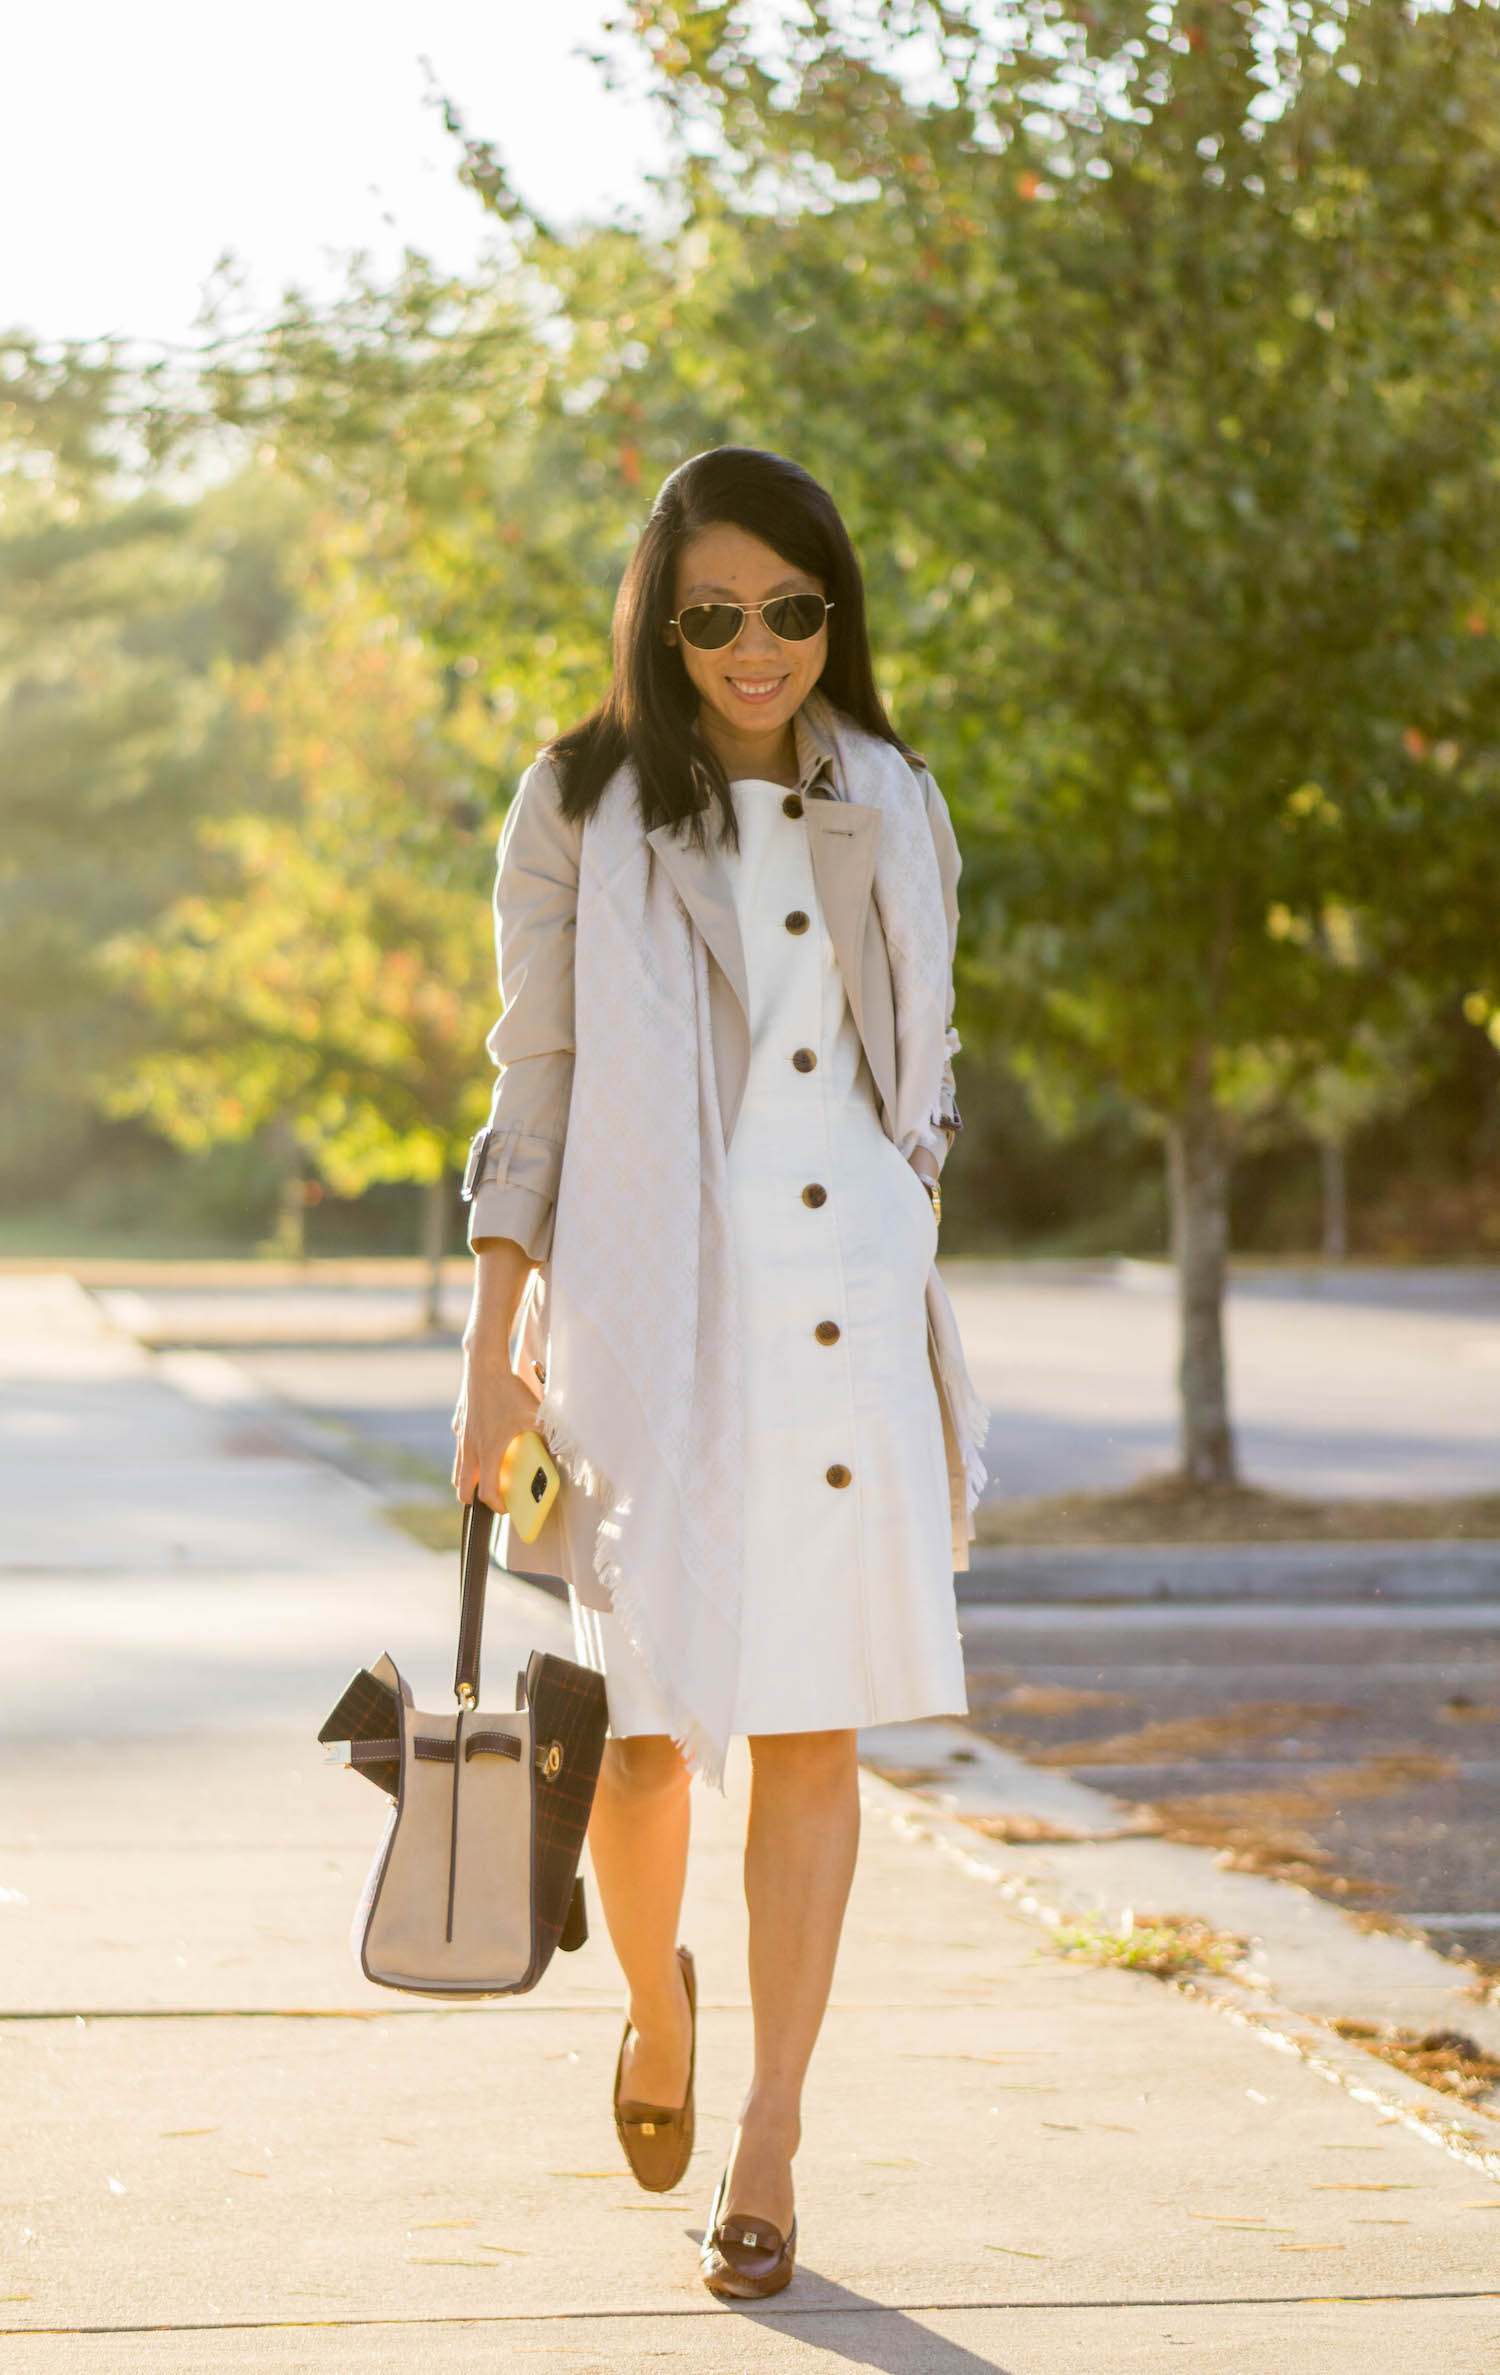 Burberry Marystow trench coat, Tory Burch traveler scarf, Tory Burch Whitney watch, J.Crew double-breasted sleeveless sheath dress, Tory Burch Lee Radziwill double bag in checked splittable wool, Tory Burch Ludlow driver loafers